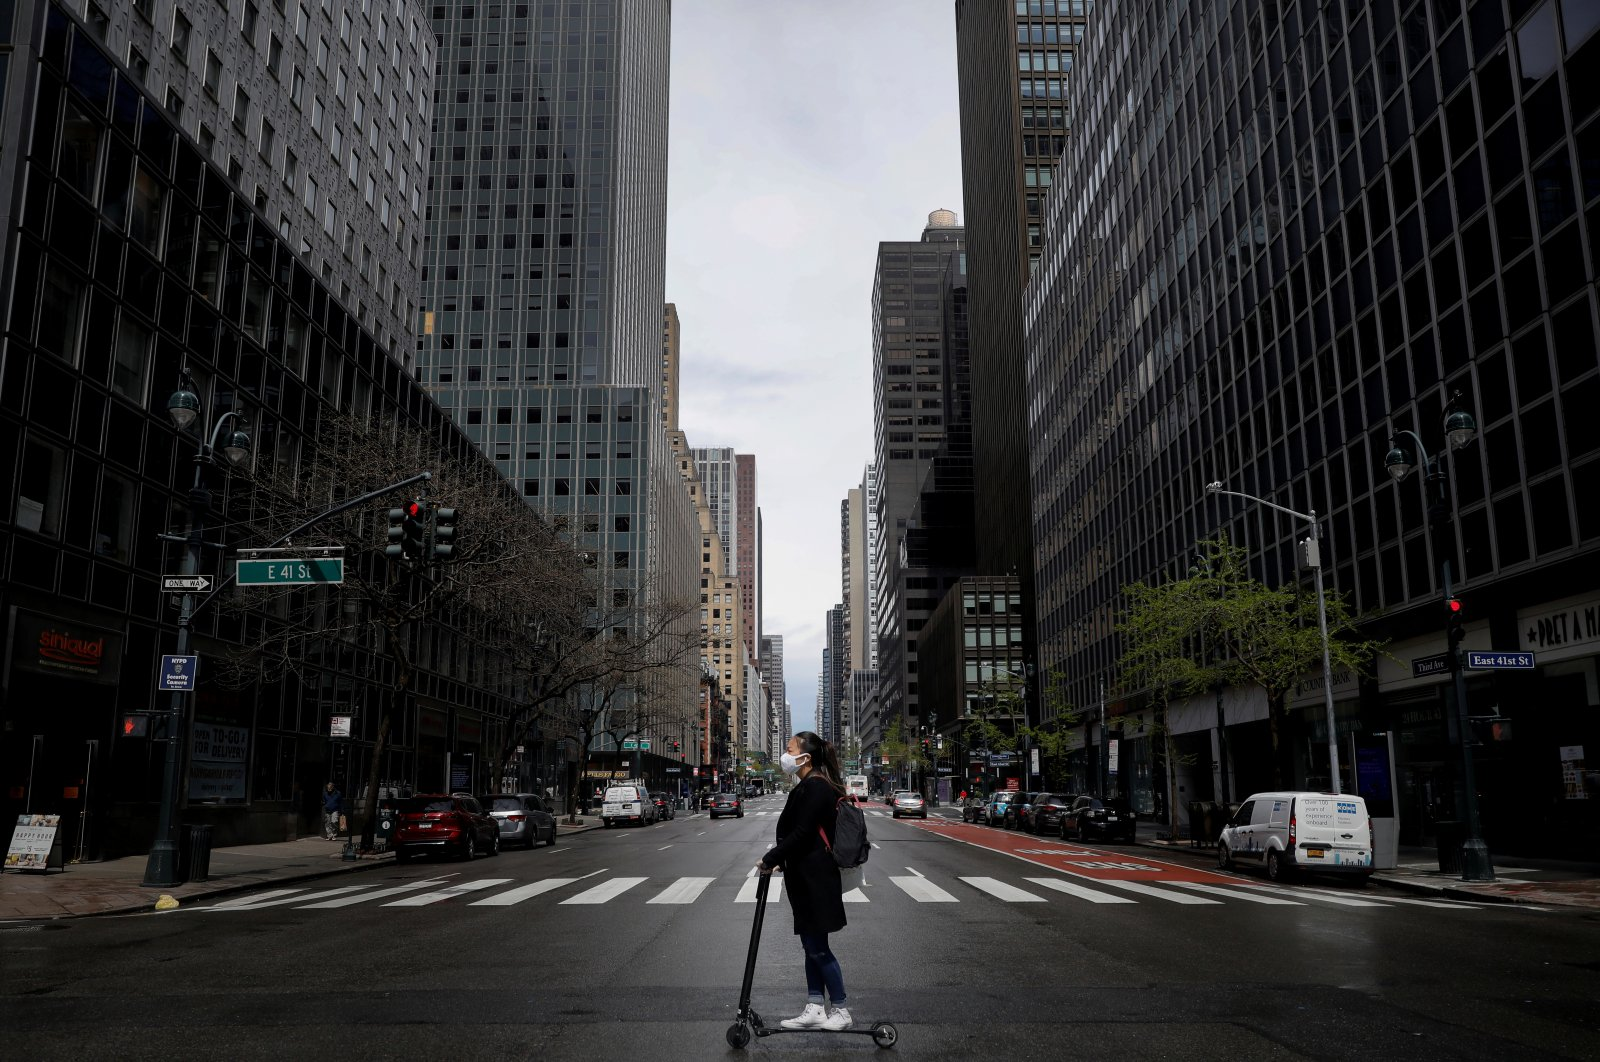 A woman wearing a protective face mask rides a scooter across a nearly empty 3rd Avenue in midtown Manhattan during the coronavirus outbreak, in New York City, New York, U.S., April 21, 2020. (Reuters Photo)